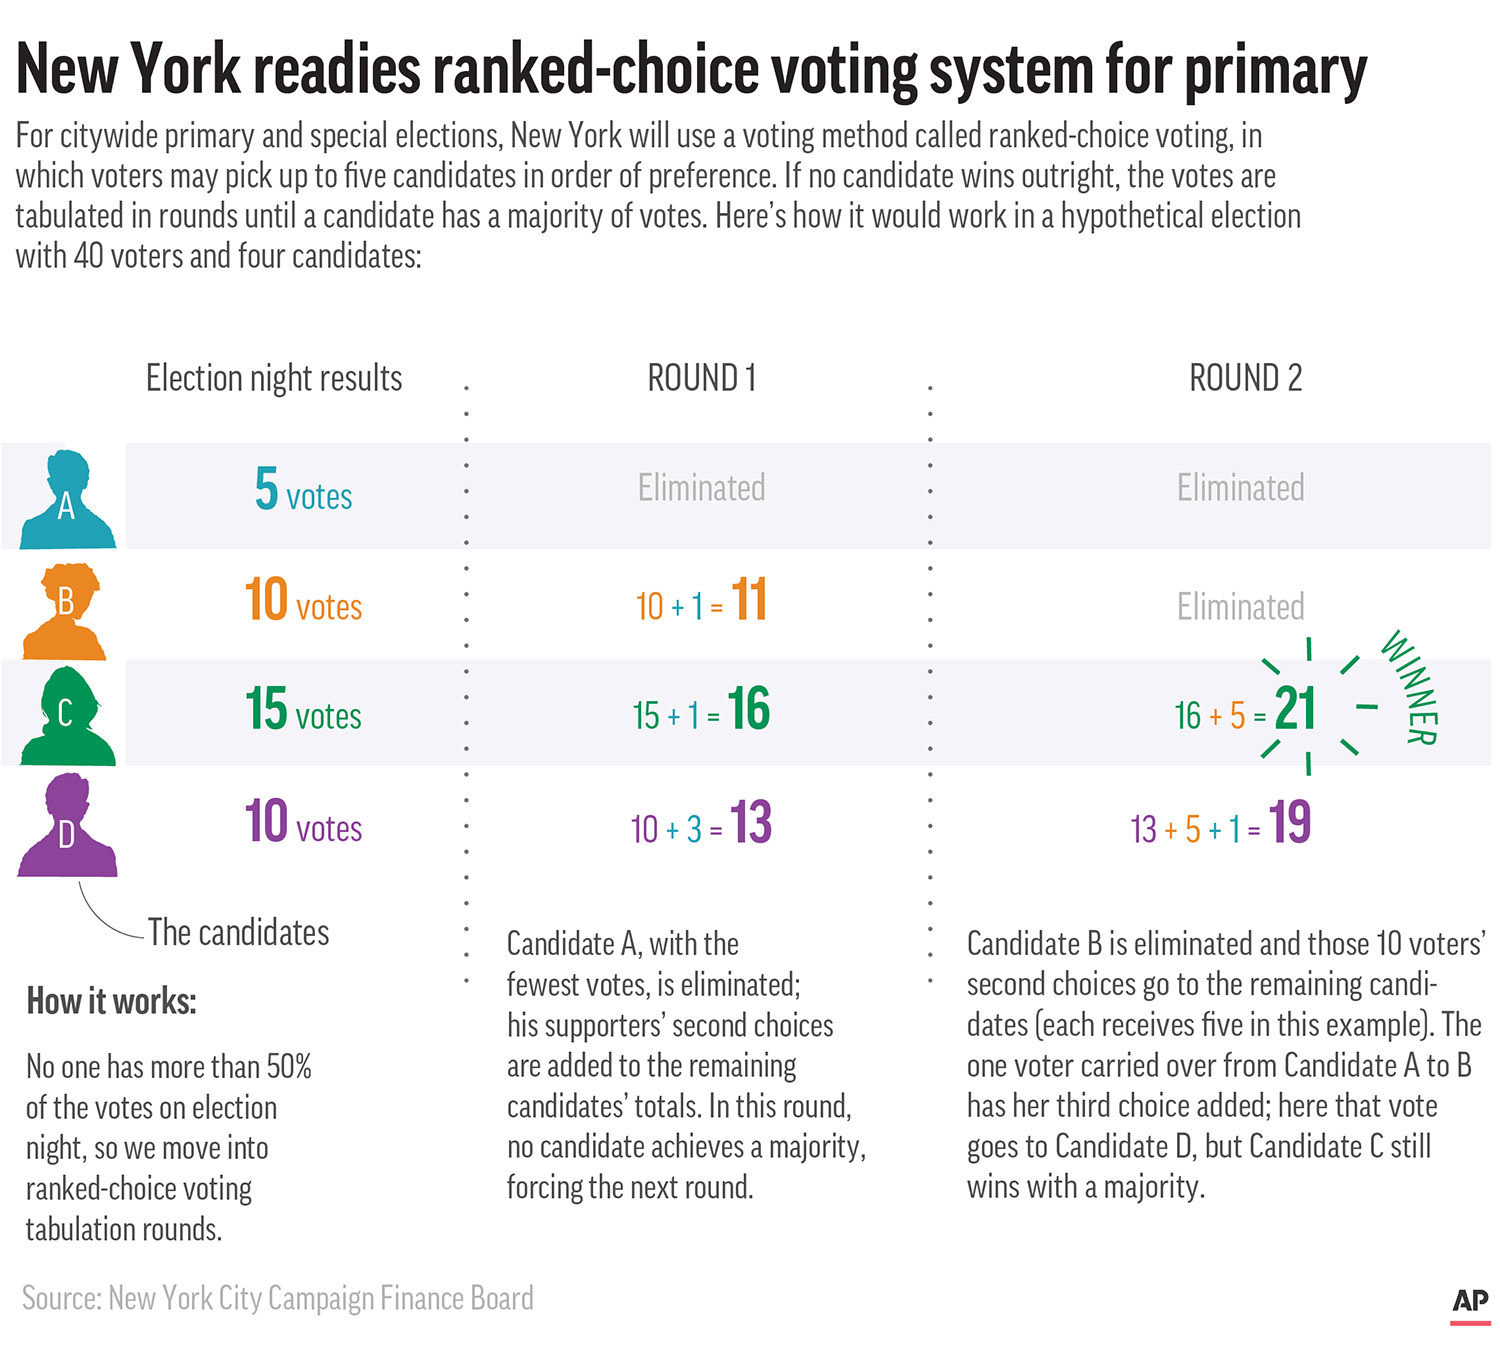 NYC Ranked-Choice Voting